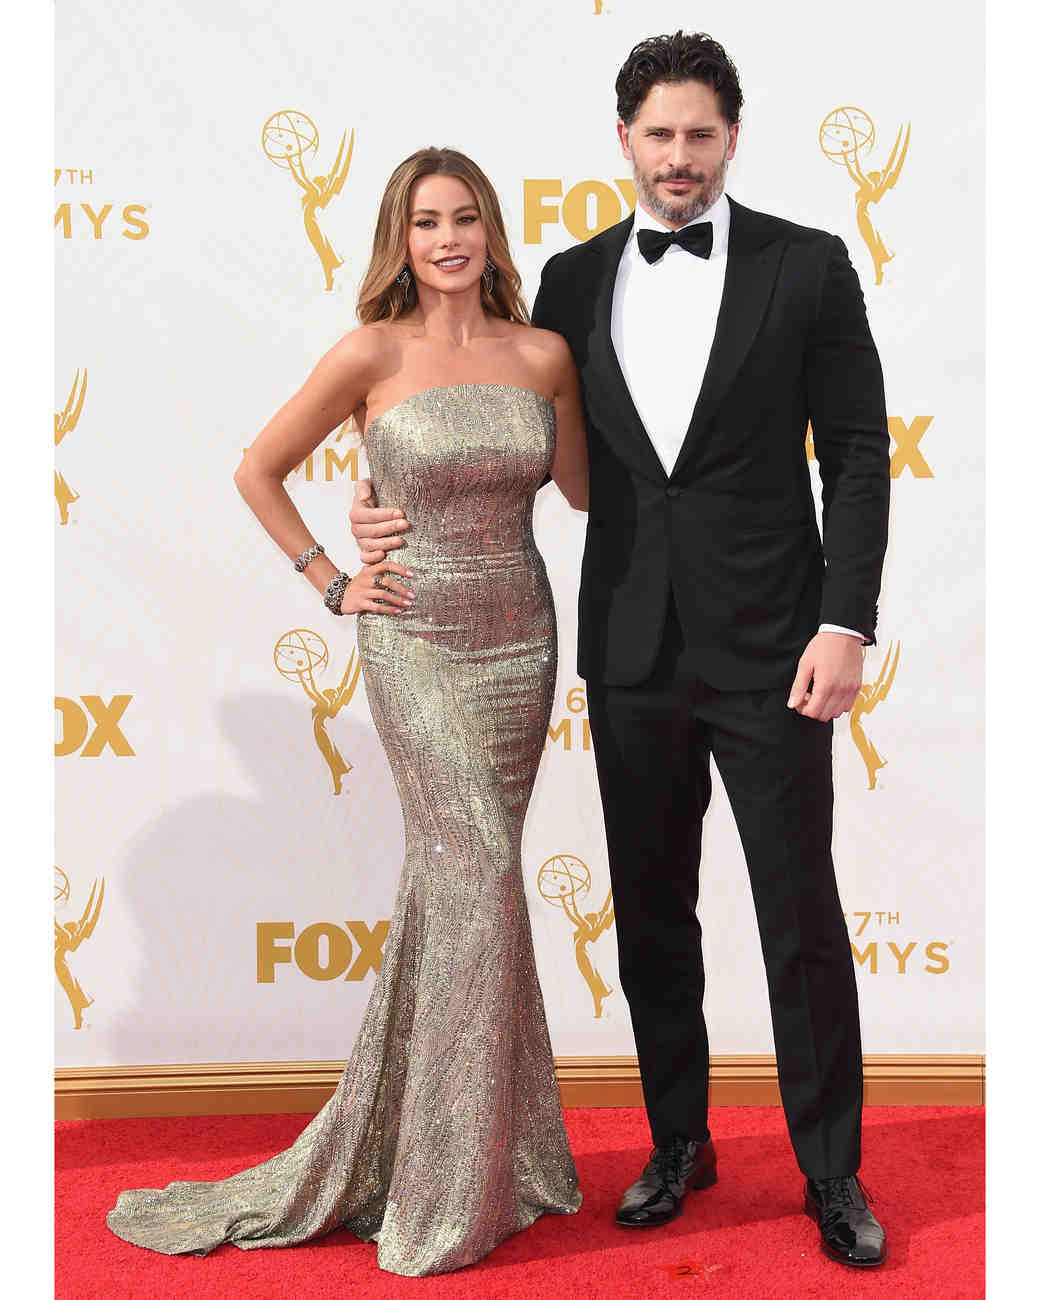 sofia-vergara-red-carpet-emmys-gettyimages-489368628-0915.jpg